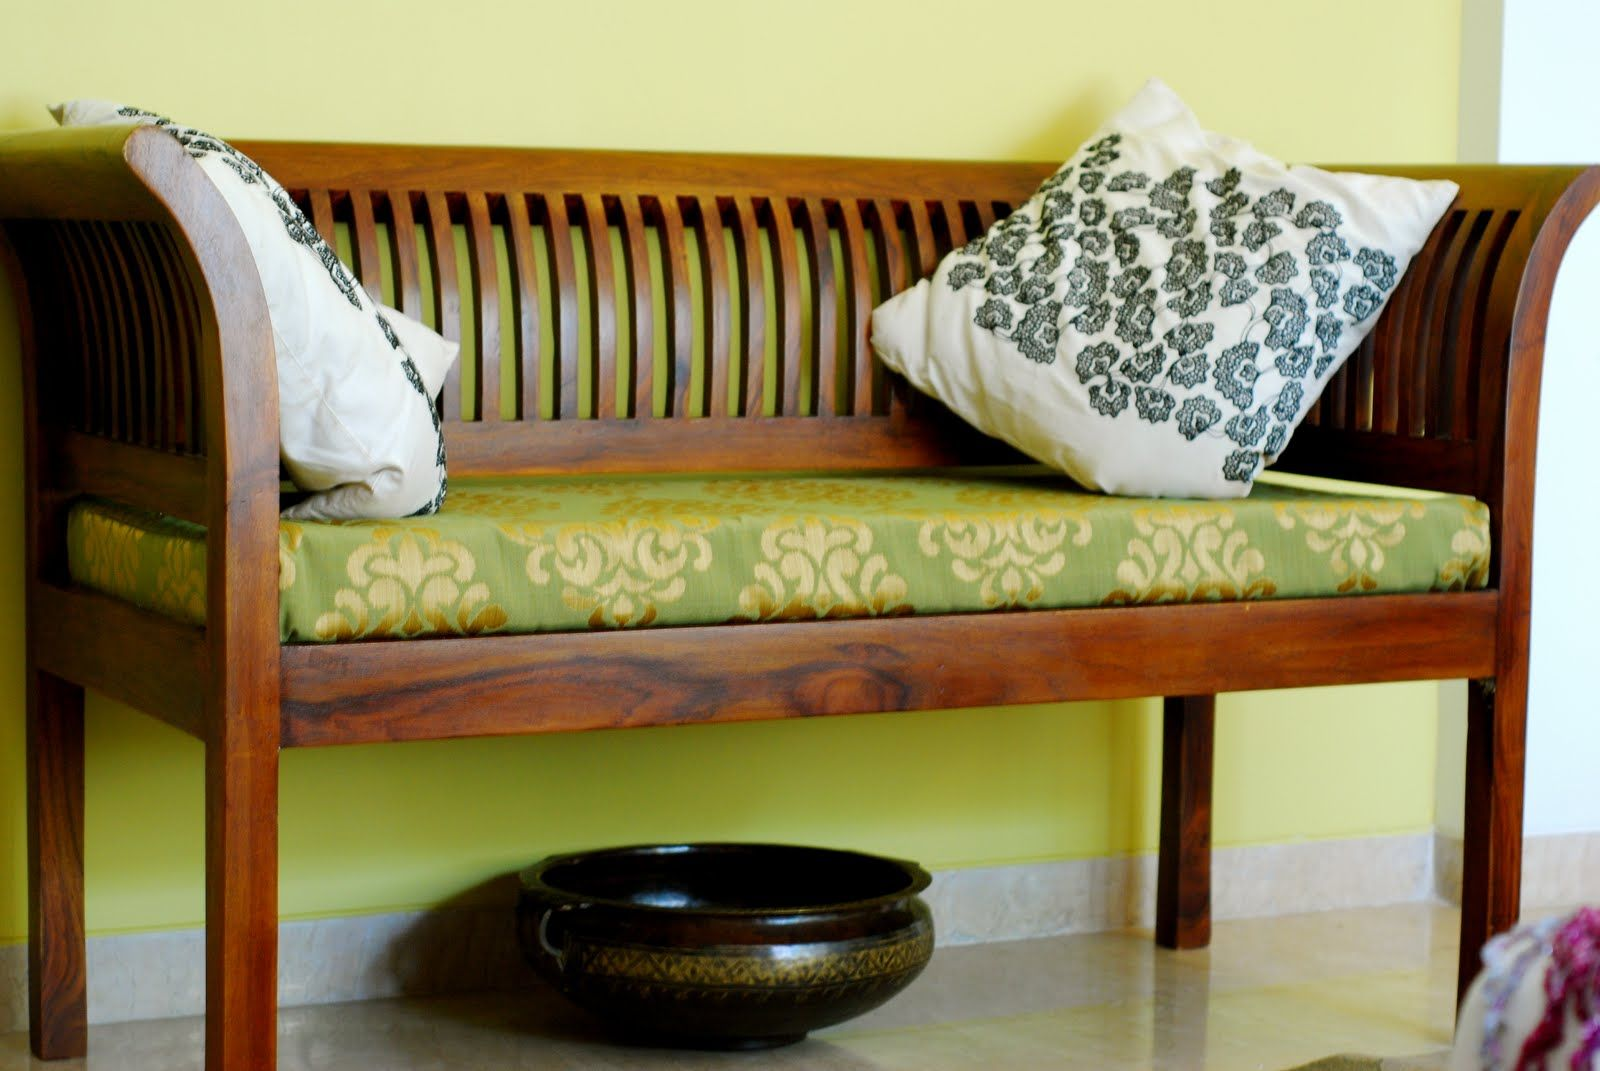 Sofa Olx Jodhpur Bench From Fabindia Indian Home Decor In 2019 Pinterest